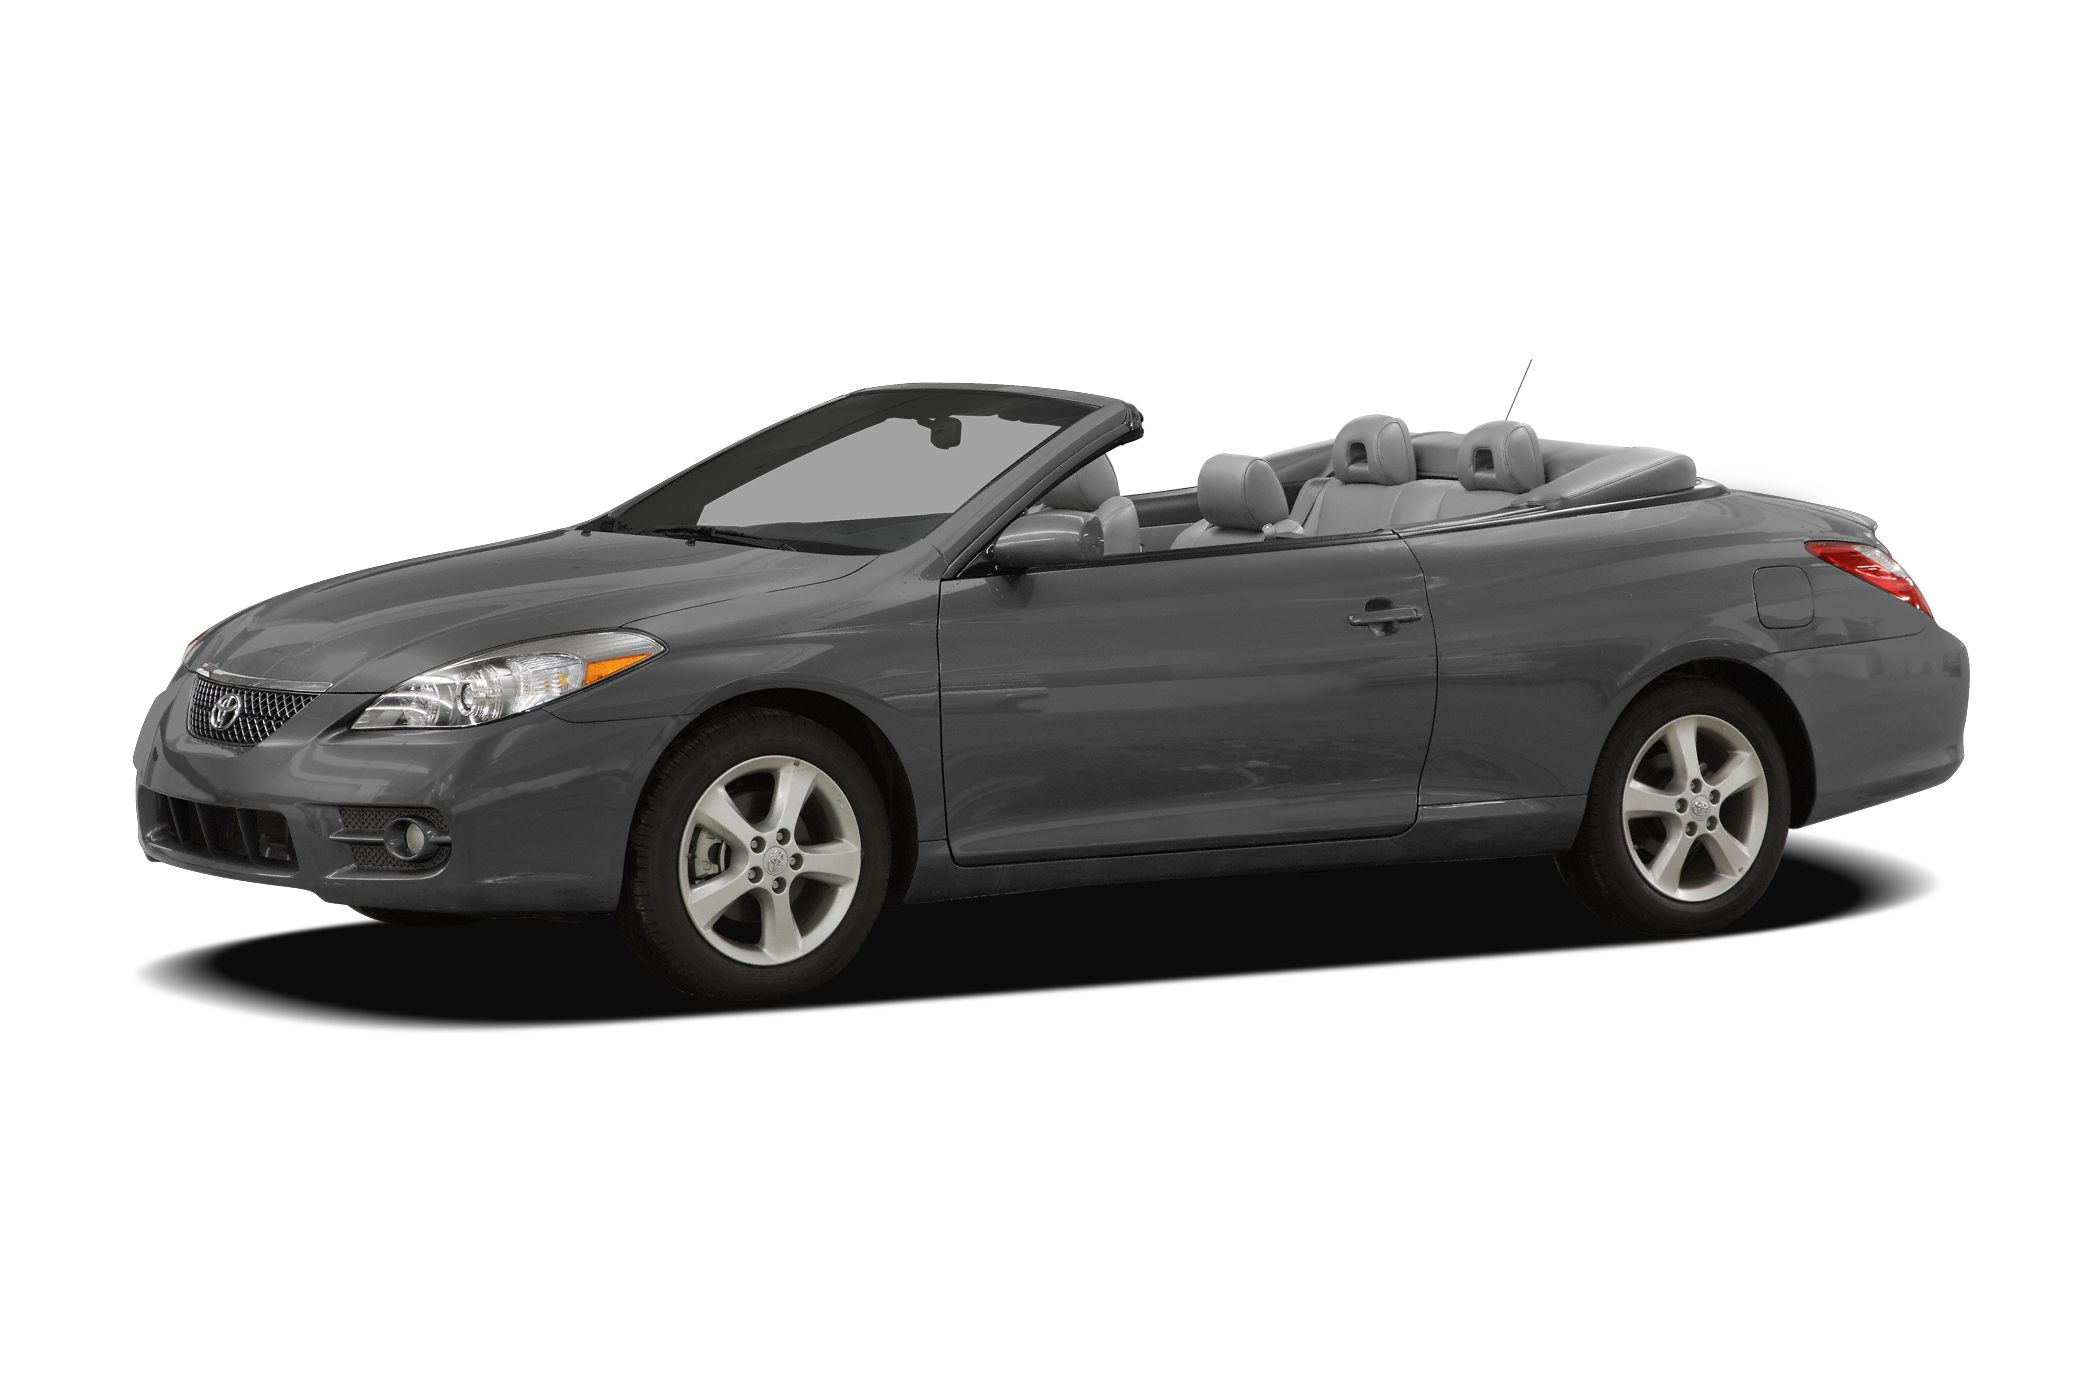 2007 Toyota Camry Solara SE Coupe for sale in Jacksonville for $10,900 with 97,385 miles.